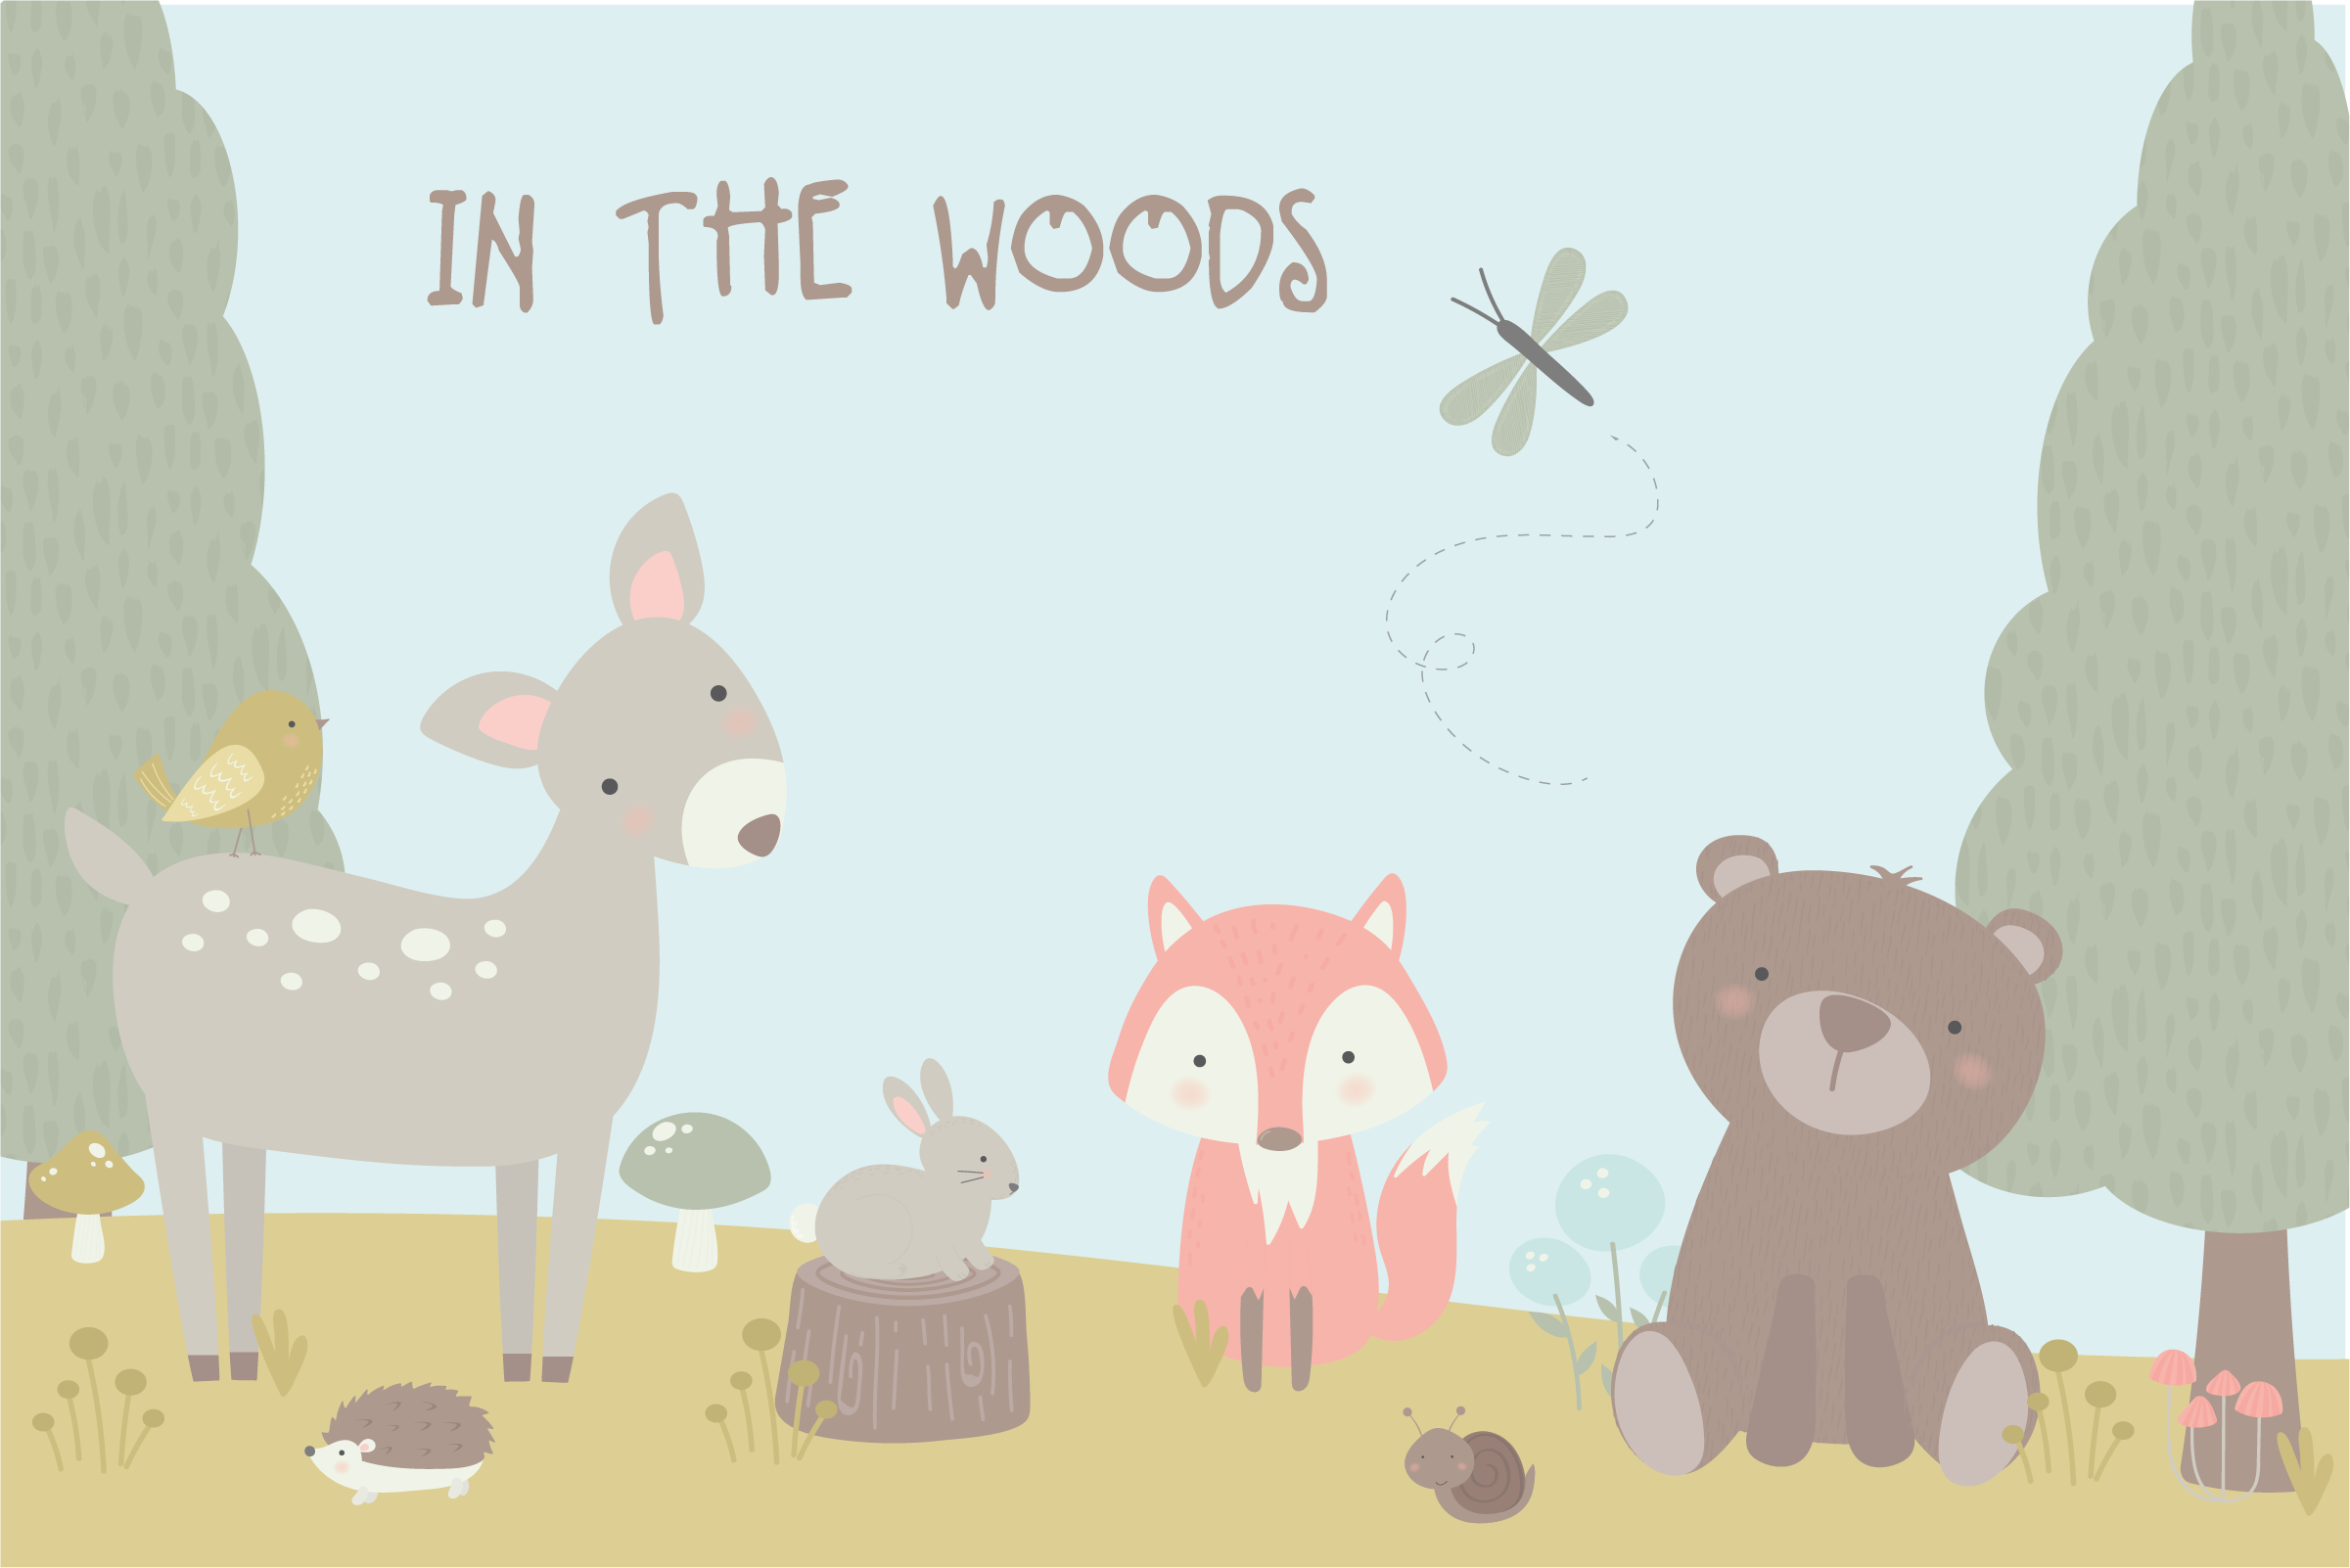 Download Free In The Woods Graphic By Poppymoondesign Creative Fabrica for Cricut Explore, Silhouette and other cutting machines.